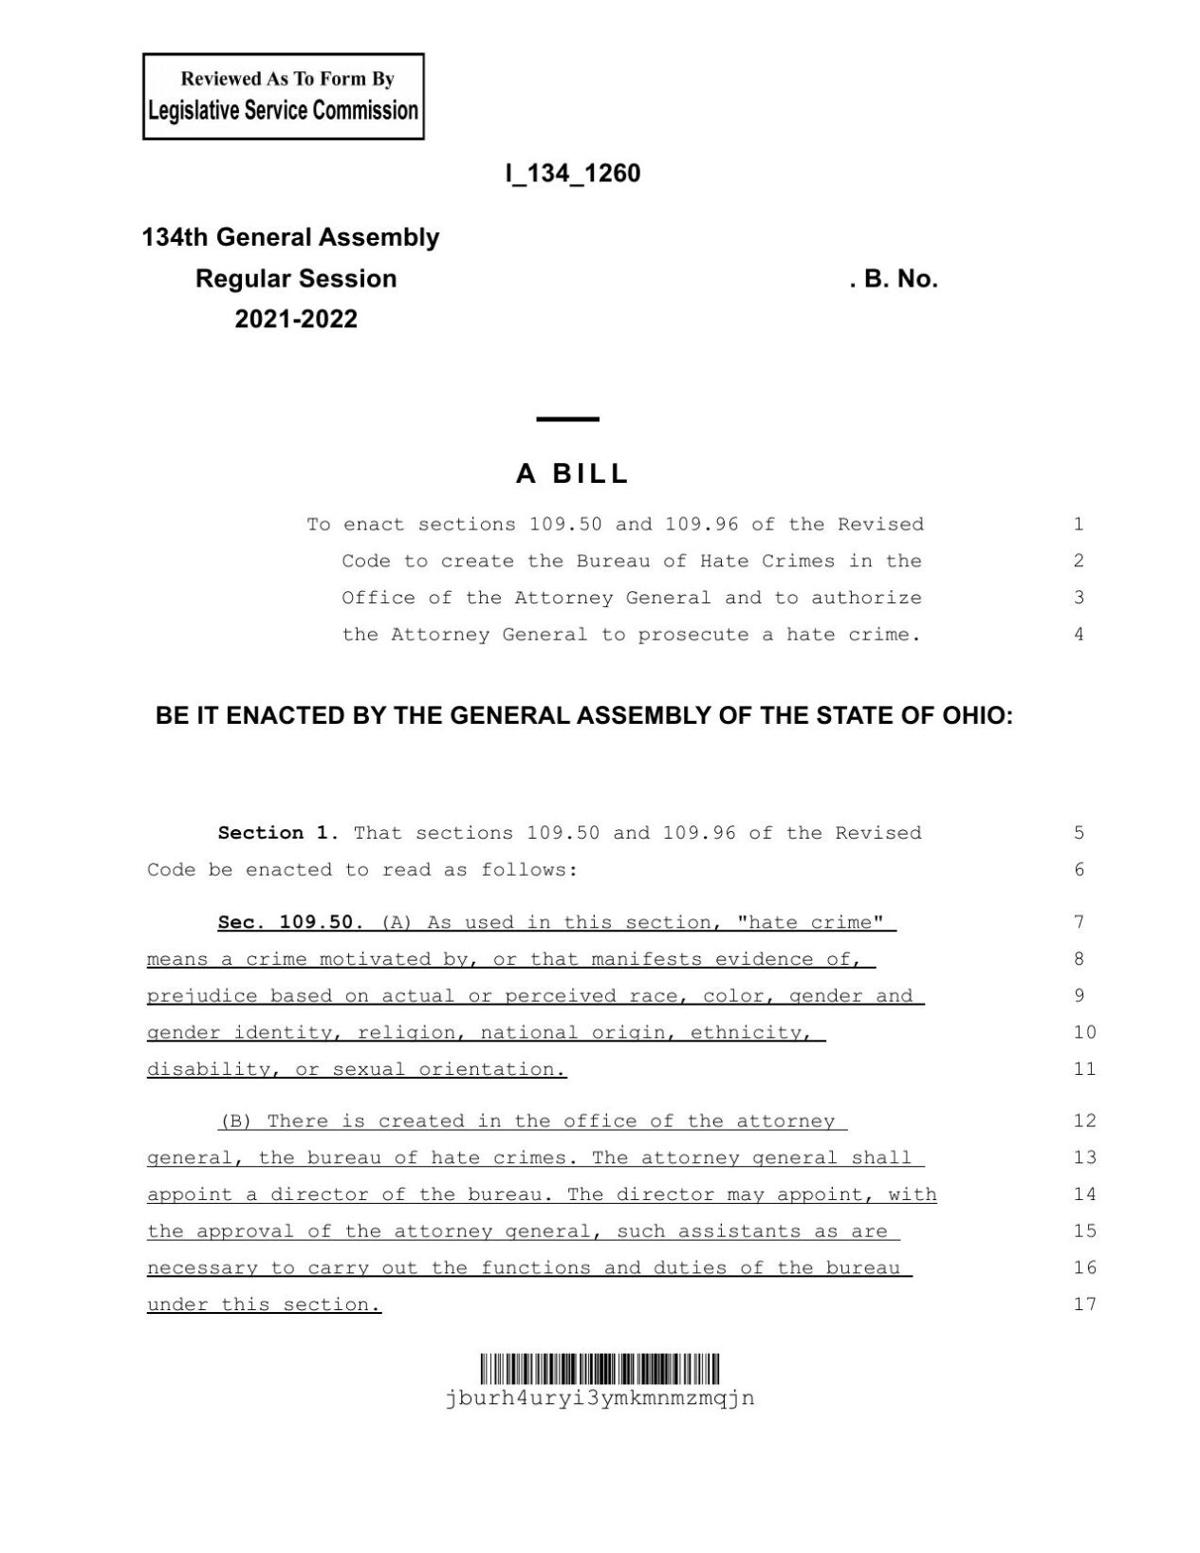 Bill to establish a Bureau of Hate Crimes in the Office of the Attorney General